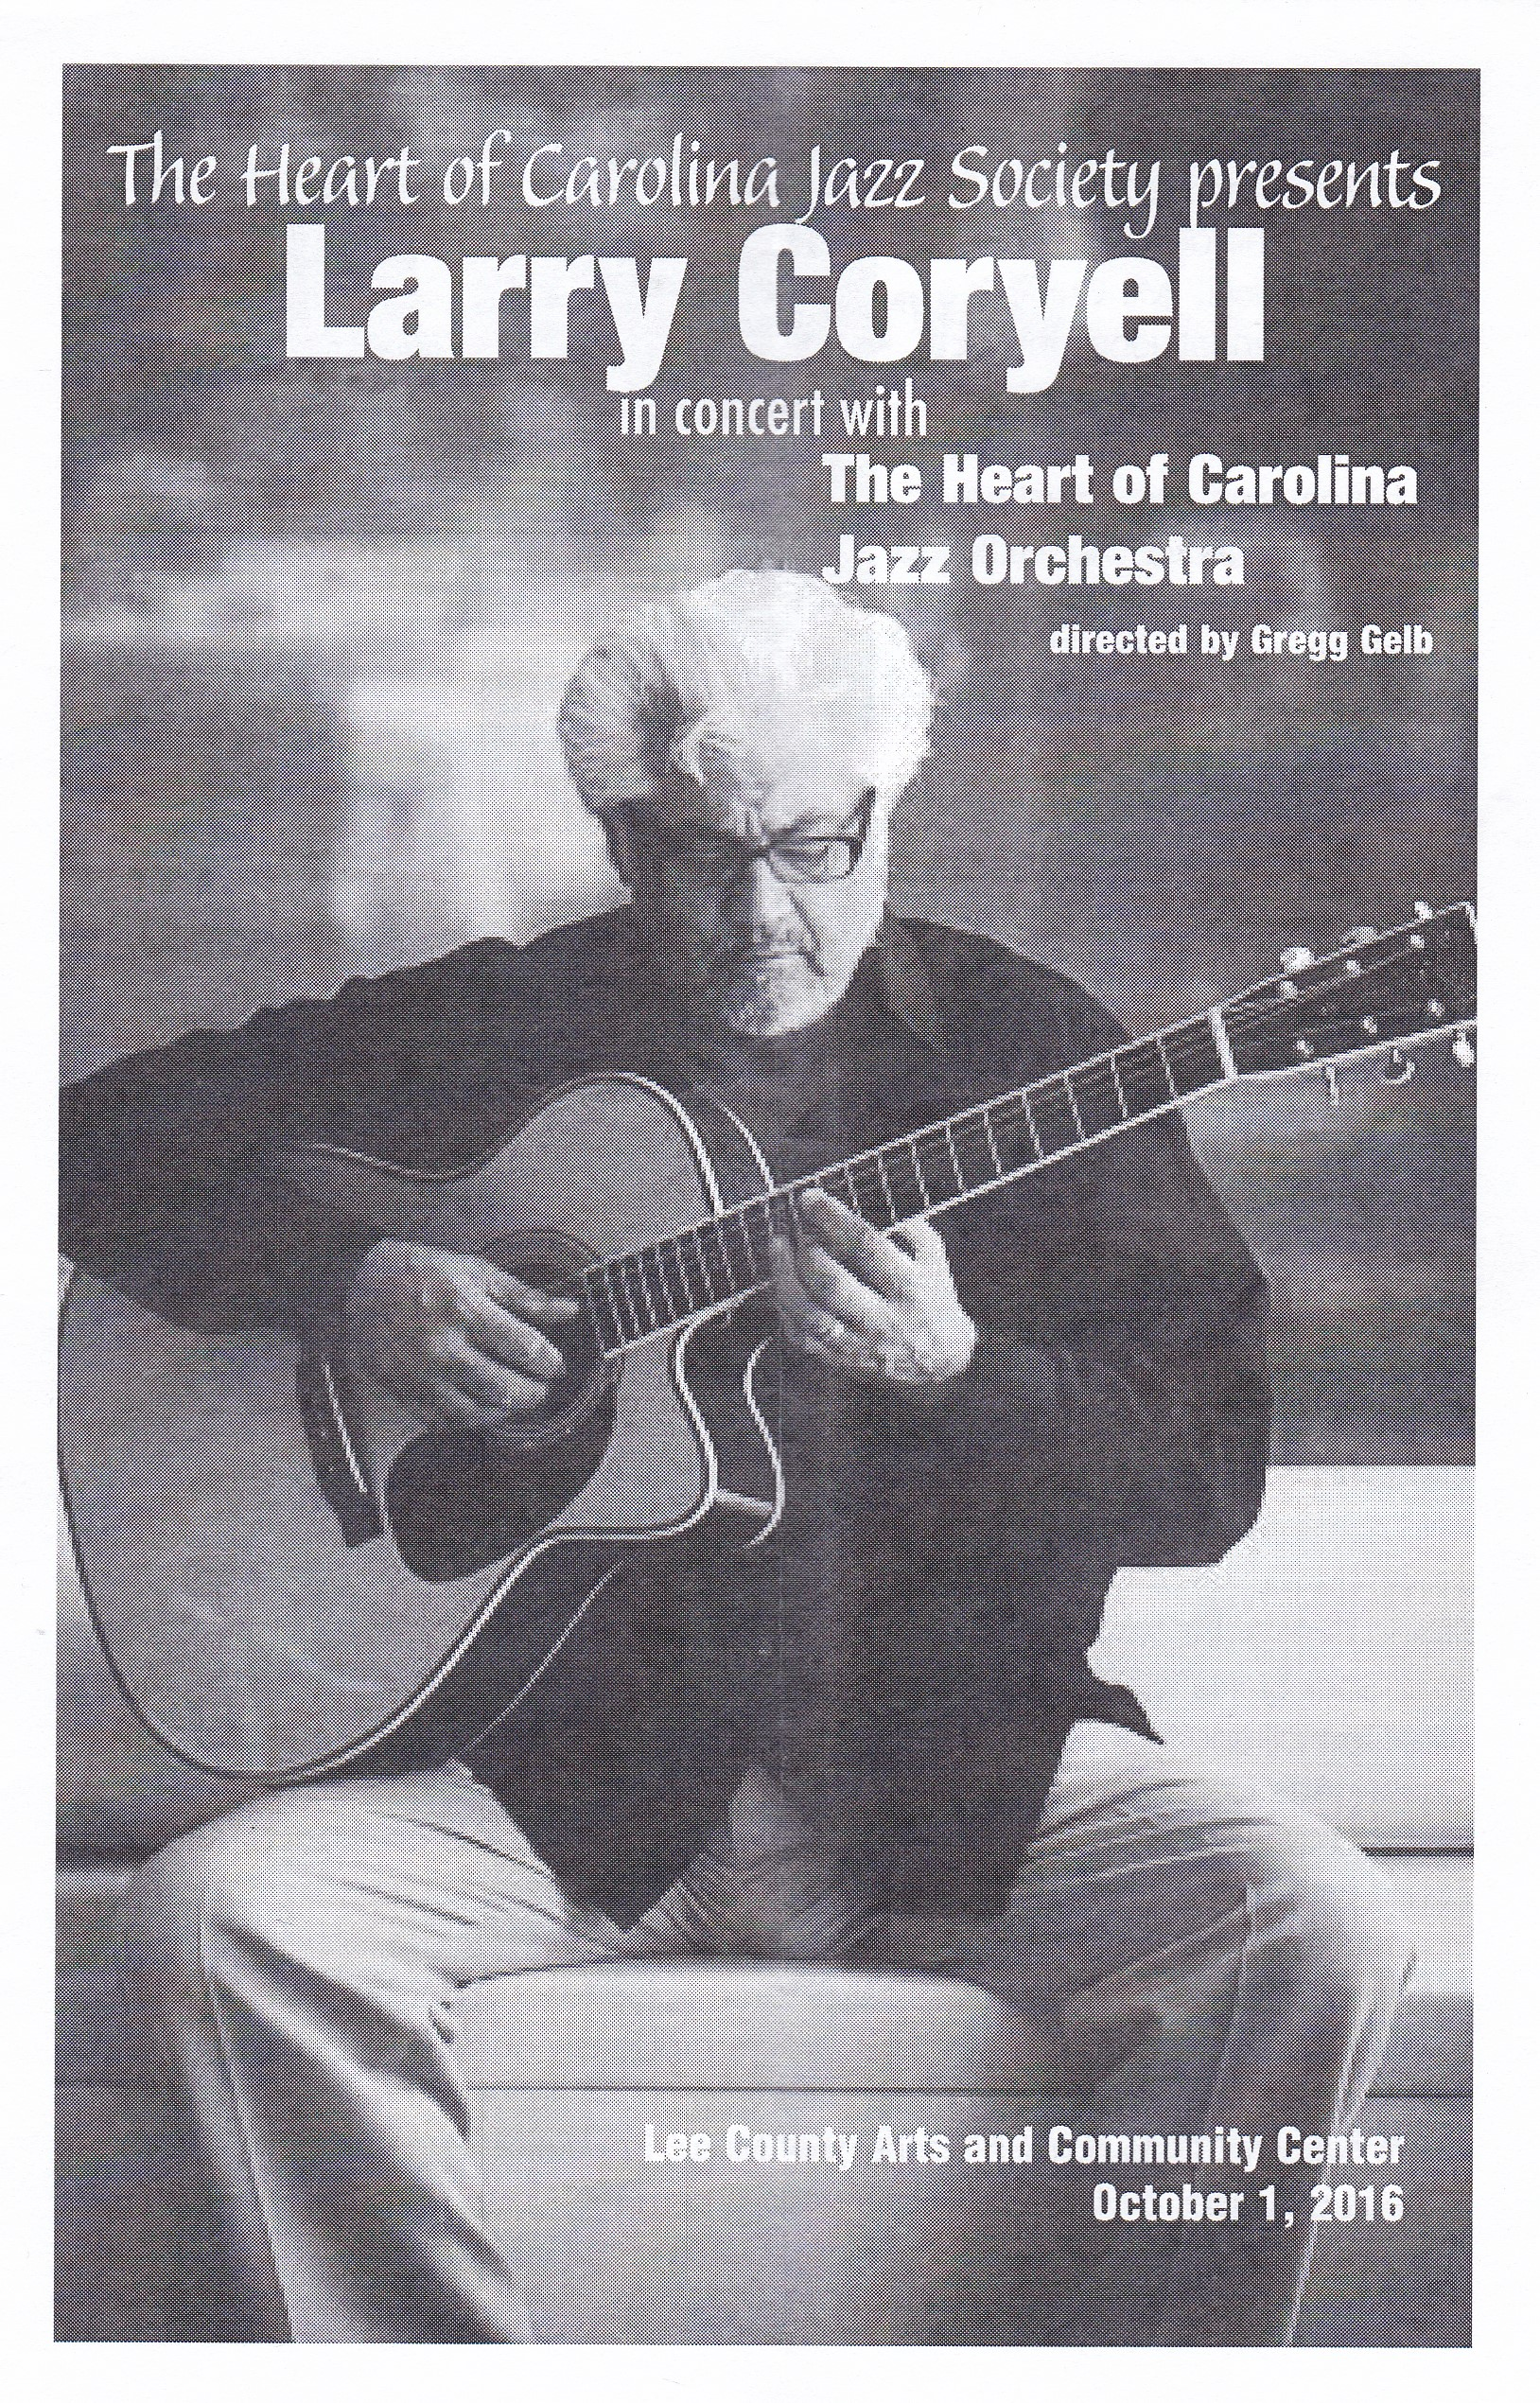 HOCJO-Guest-artist-Larry-Coryell